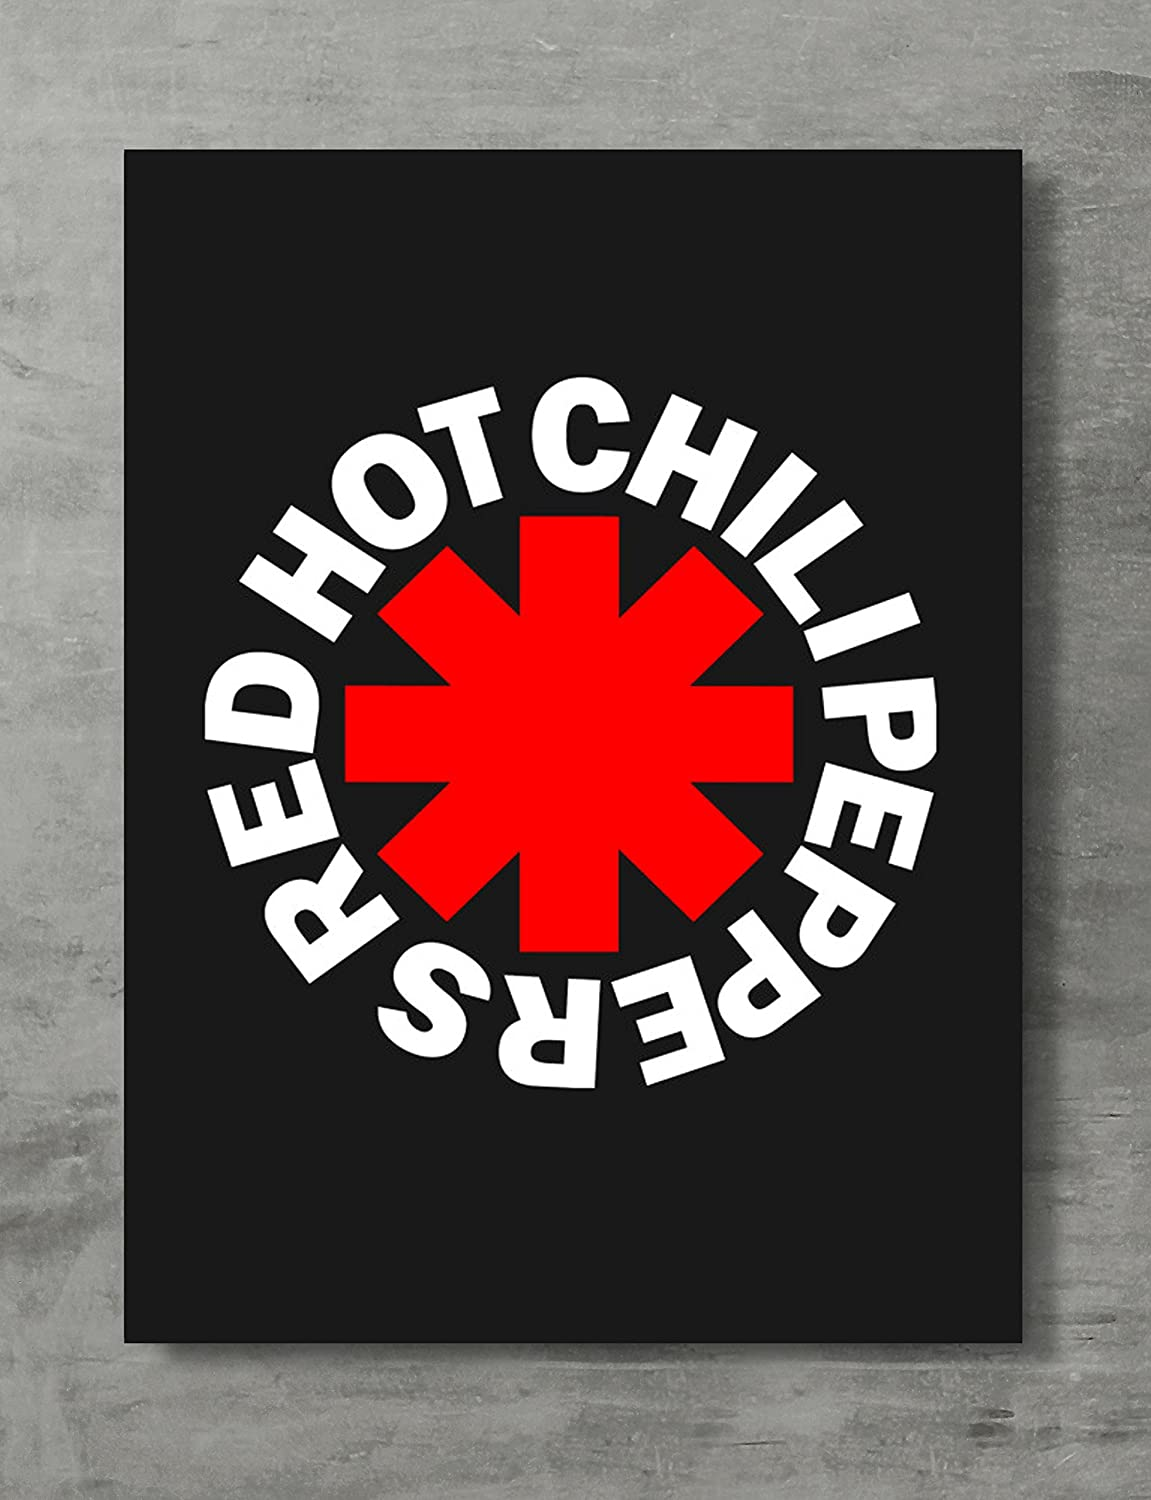 APPLEpie Red Hot Chili Peppers (Logo) Poster High Definition Posters Standard Size 24 x 18 inch